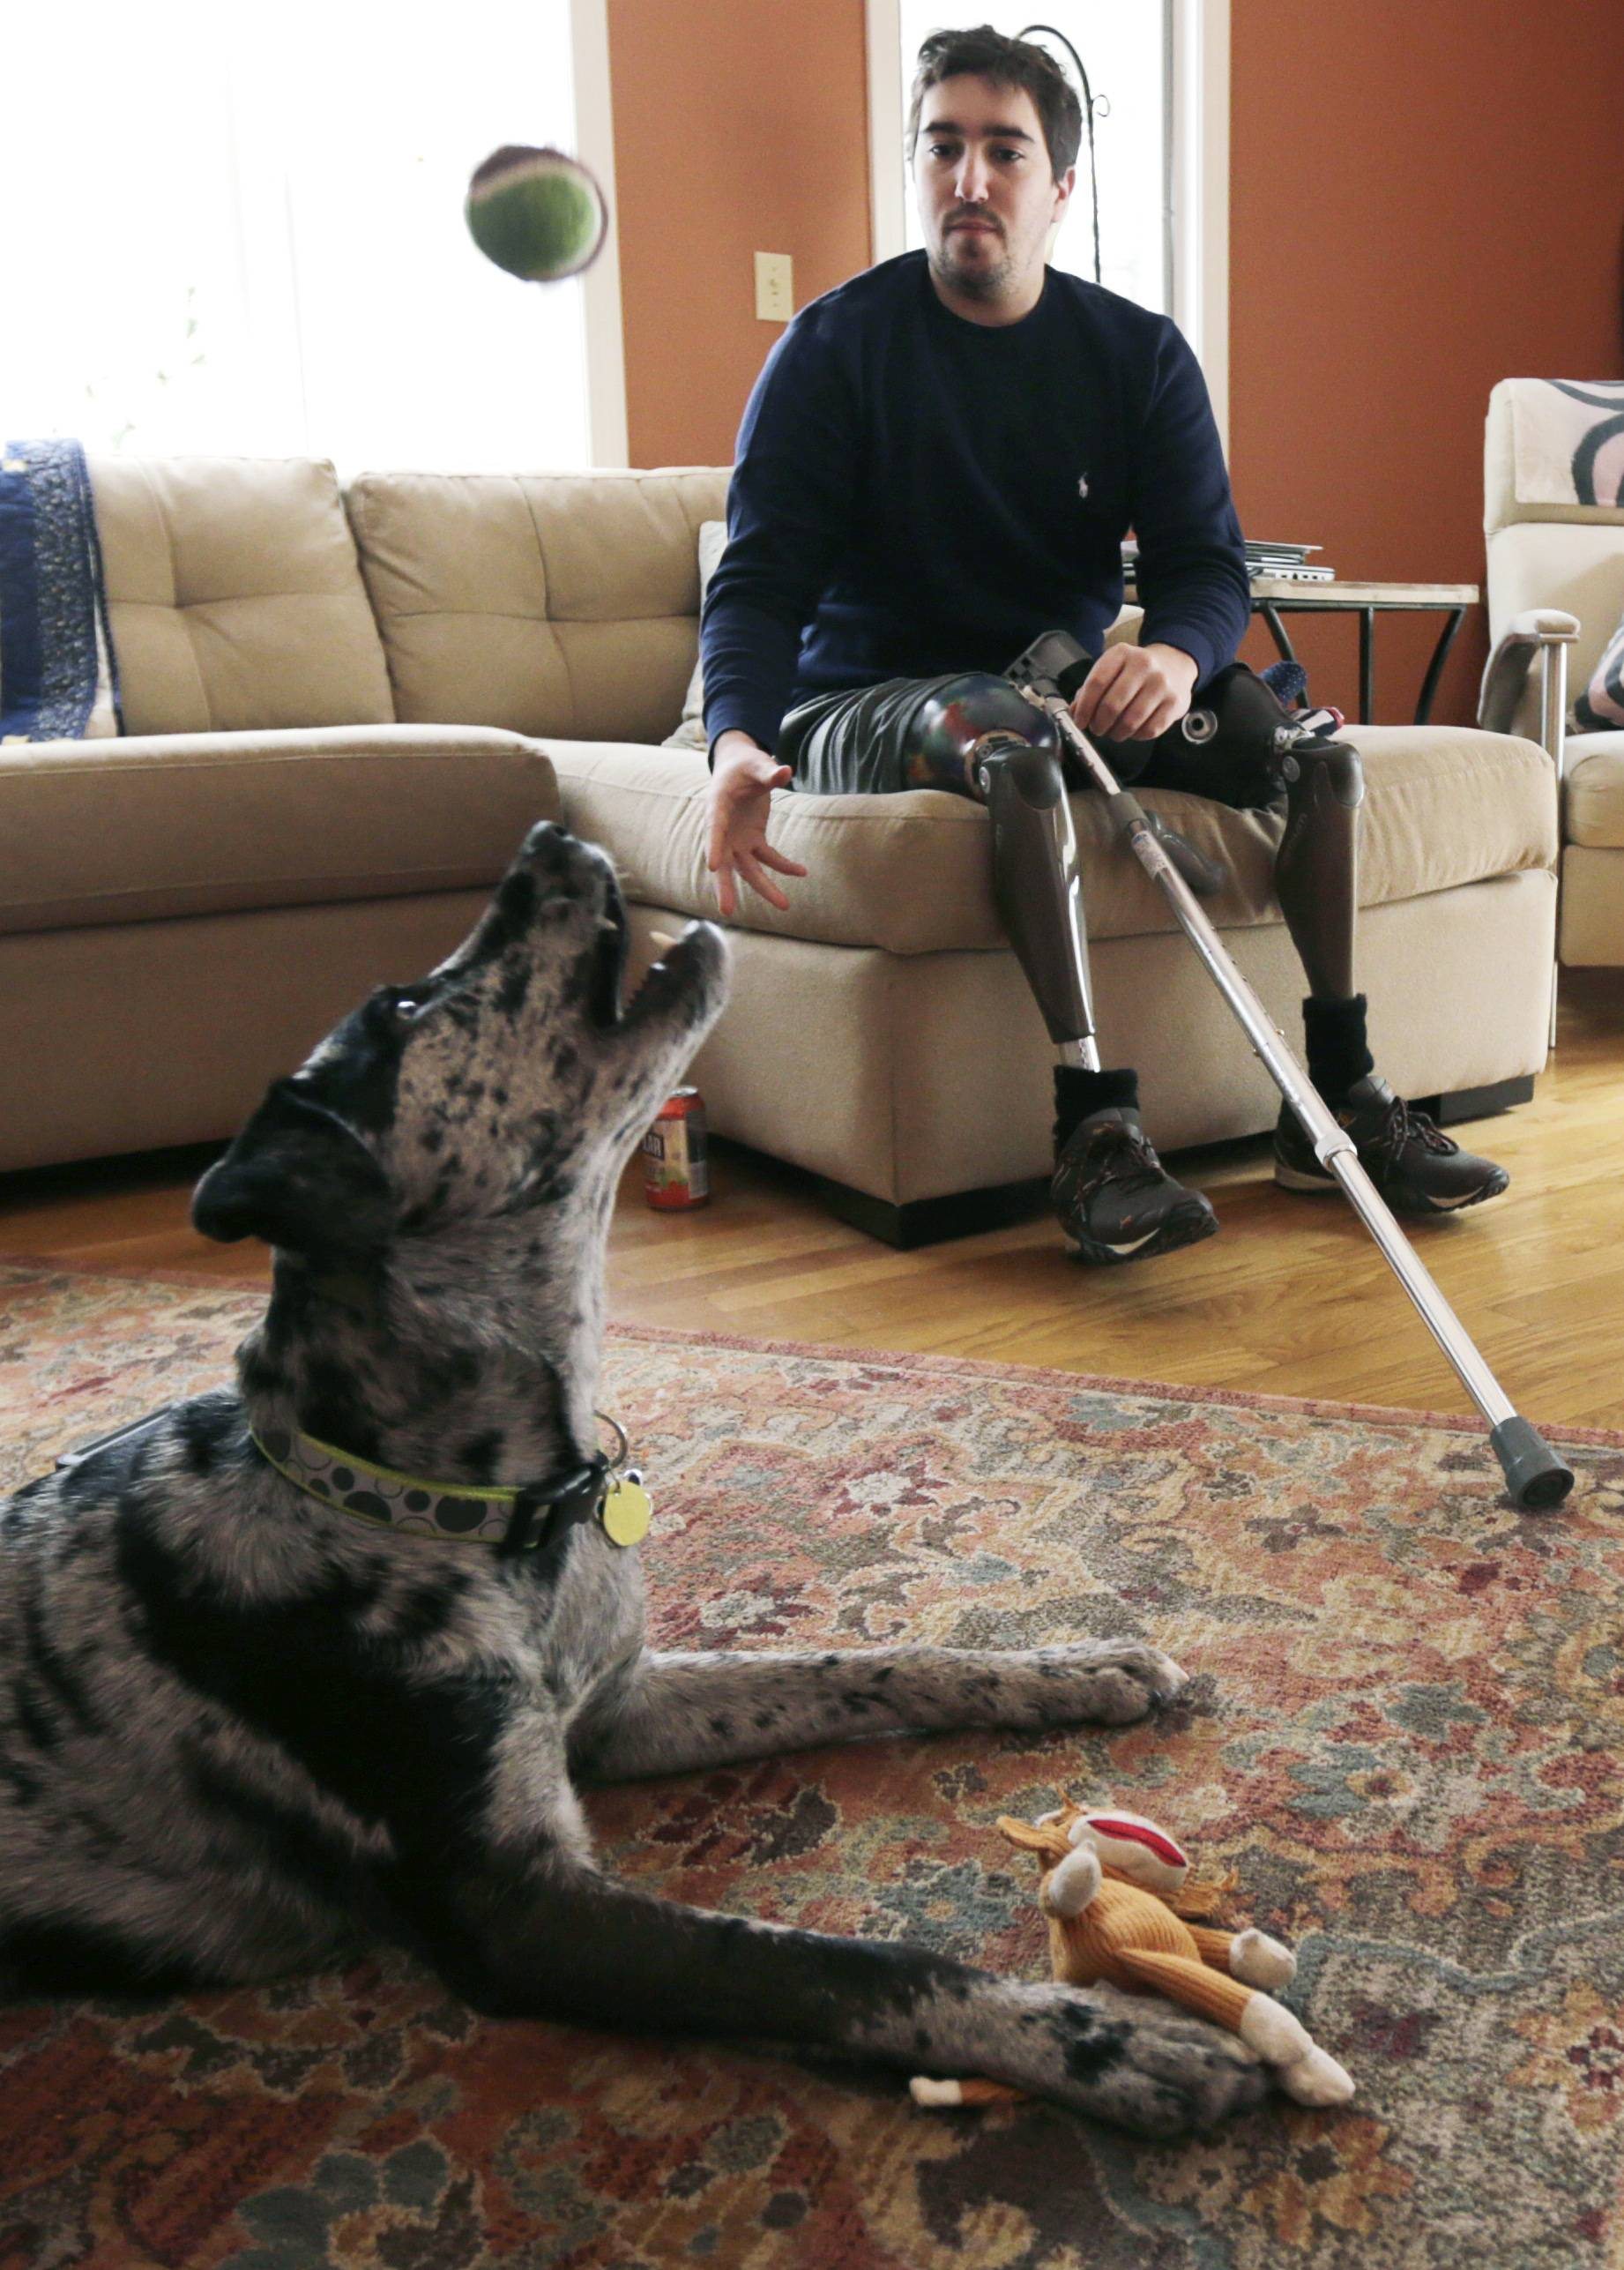 Jeff Bauman plays catch with his dog Bandit, at his Carlisle, Mass., home. Bauman, who lost both his legs above the knee in the Boston Marathon bombing, played a key role in identifying the men suspected of placing the two devices.